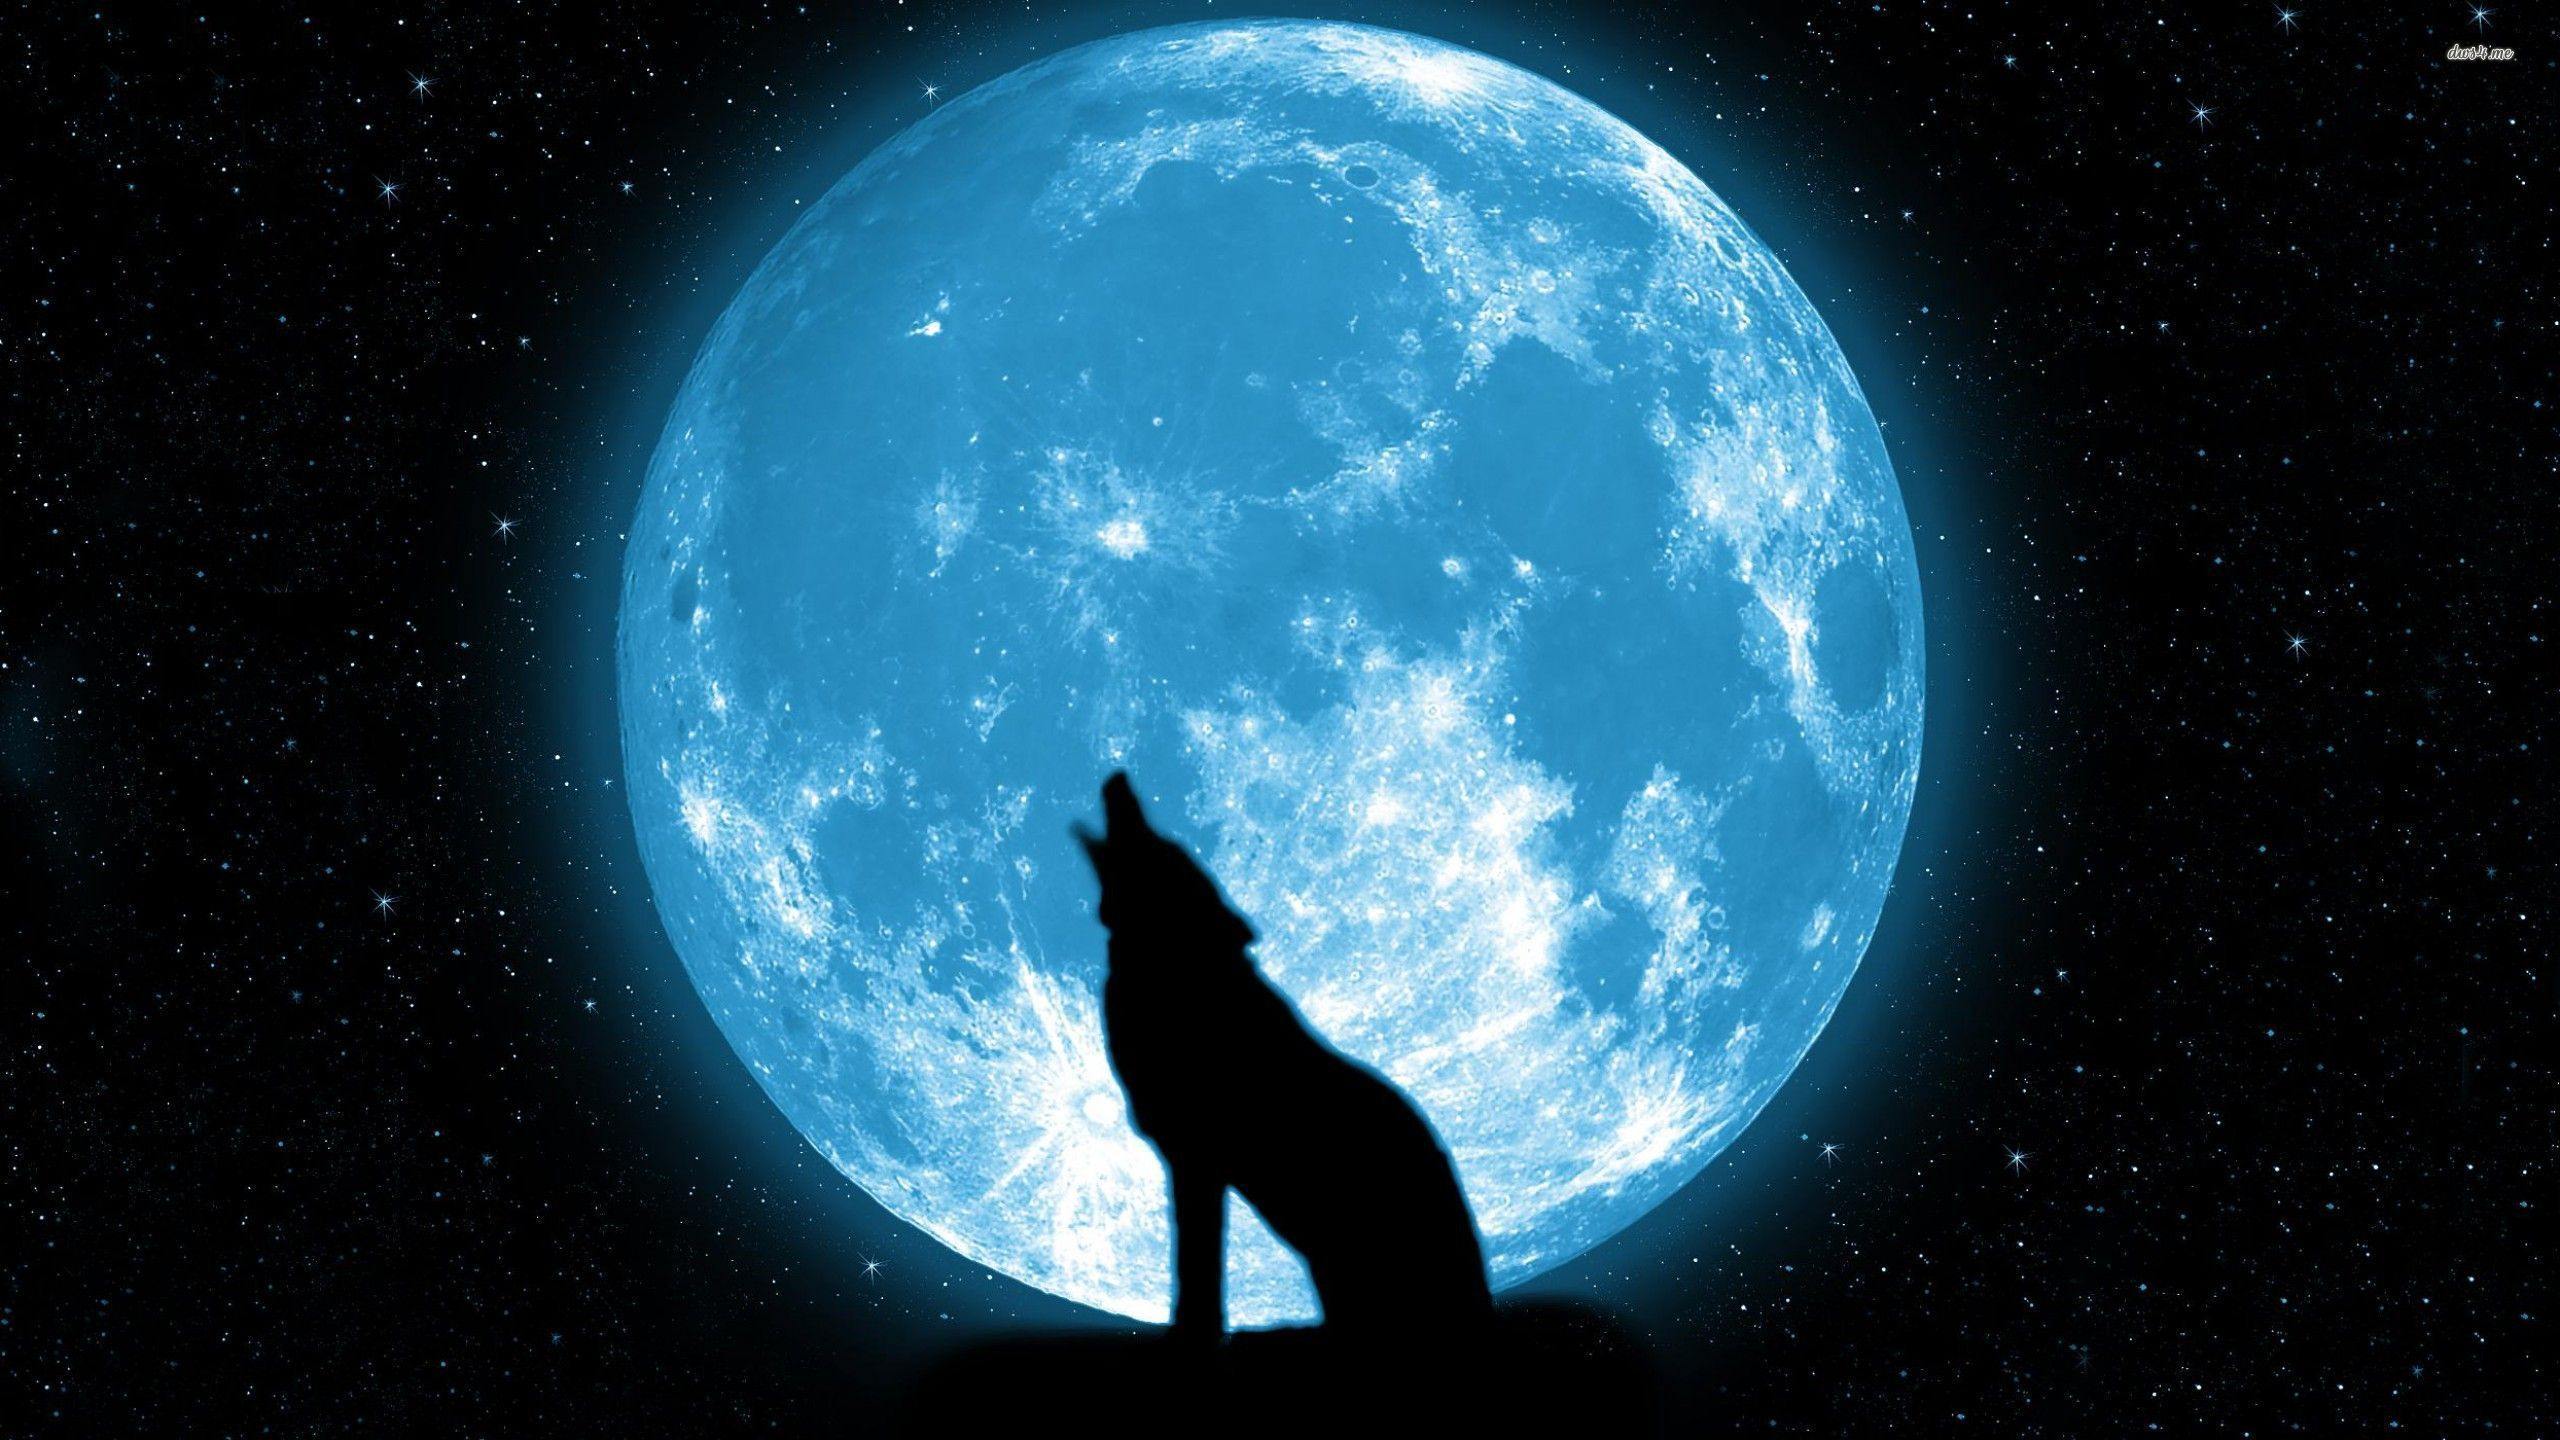 Blue Moon Wallpaper Posted By Ethan Walker